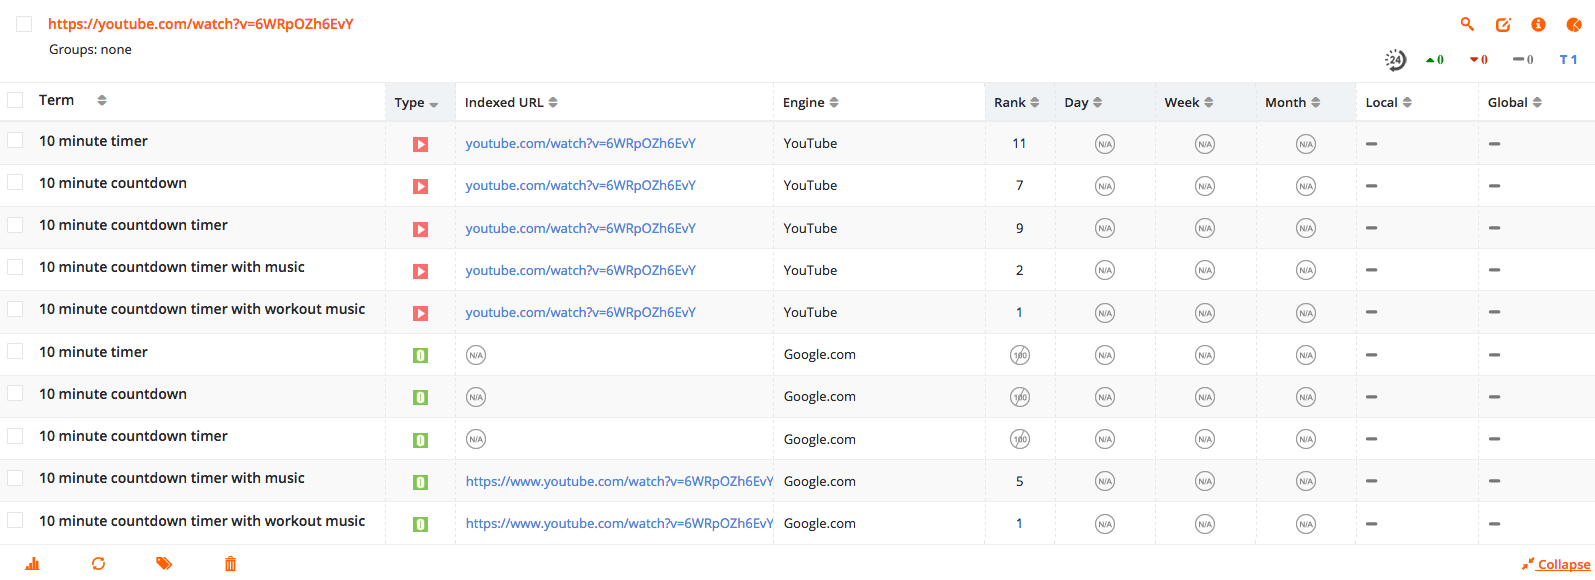 How To Get More Views On YouTube Videos In 14 Easy To Follow Steps